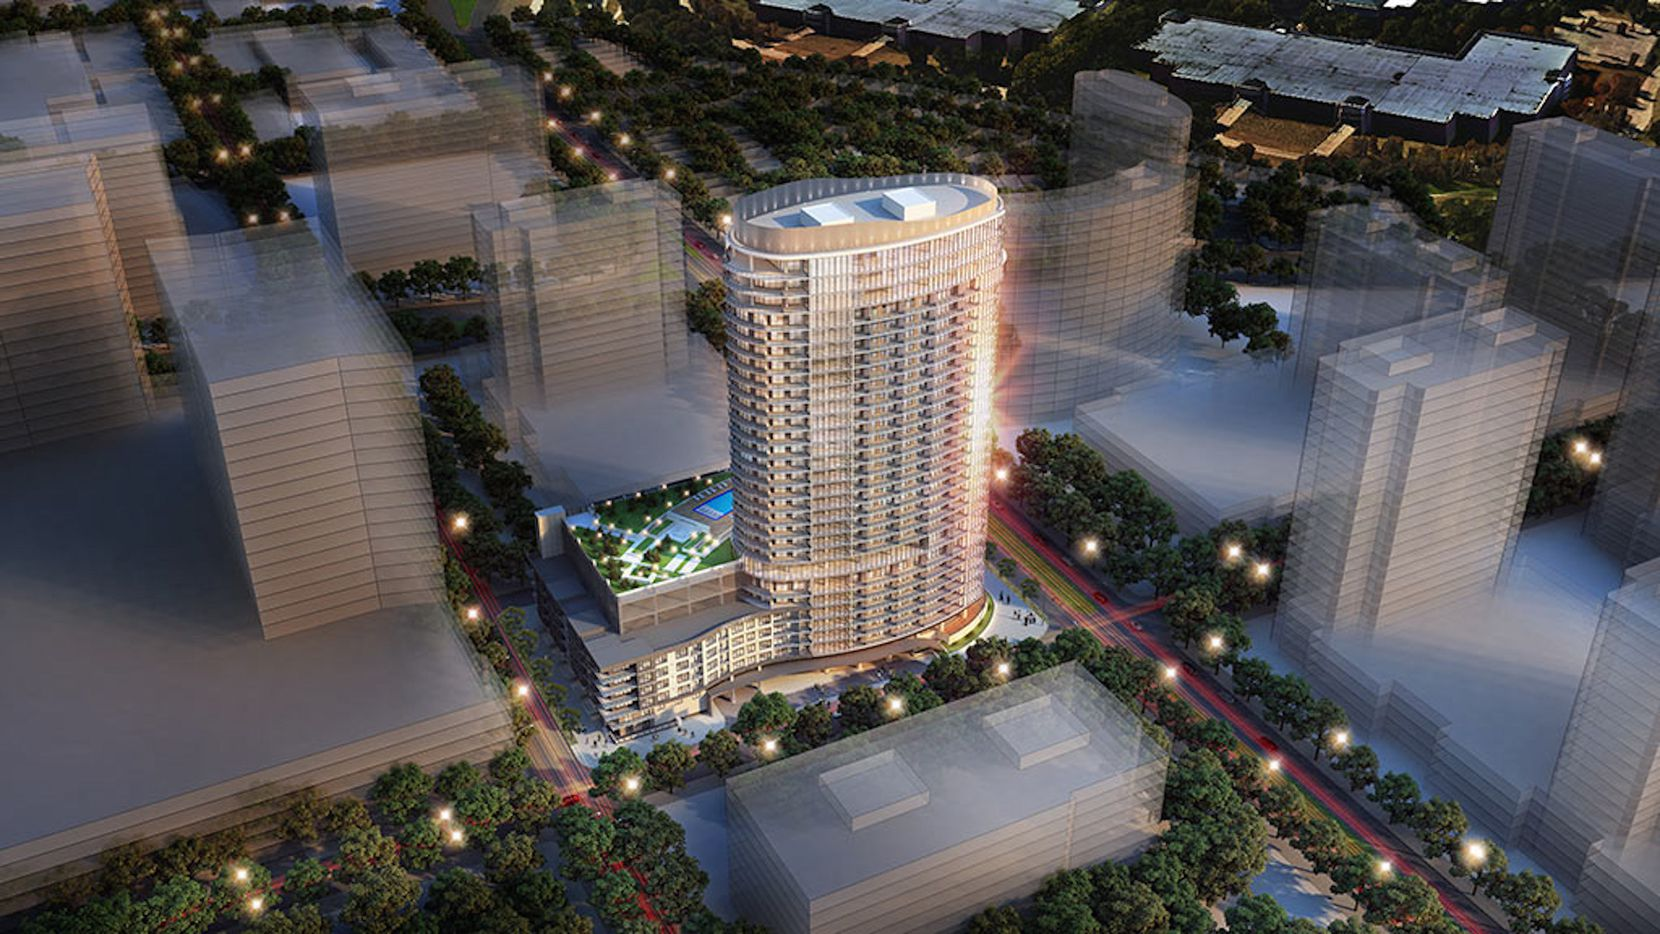 The $100 million LVL29 apartment tower is part of the $3 billion Legacy West development.